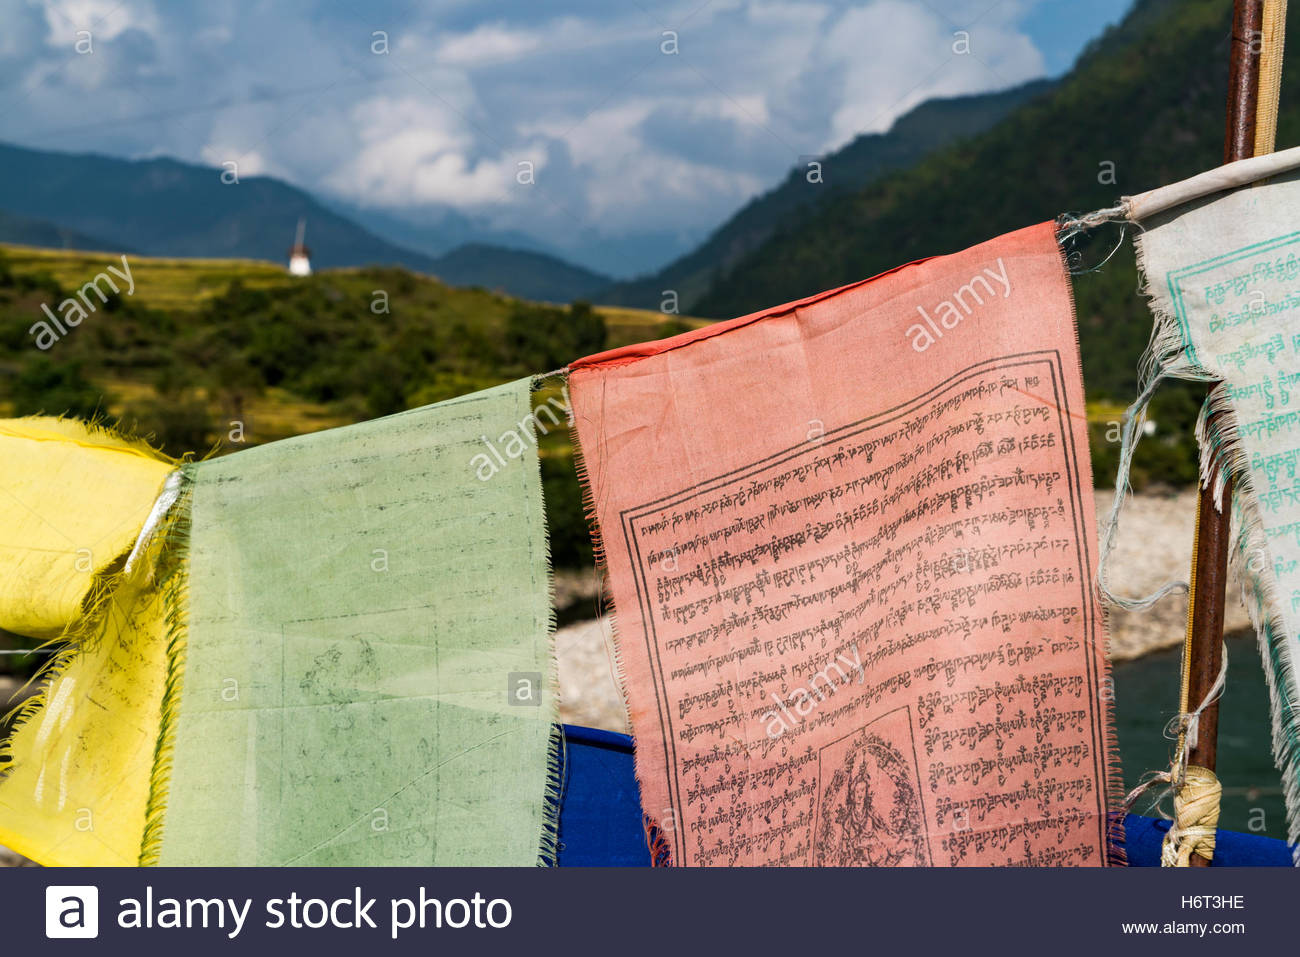 Prayer flags on a bridge over the Mo Chhu river in Punakha, Bhutan. - Stock Image